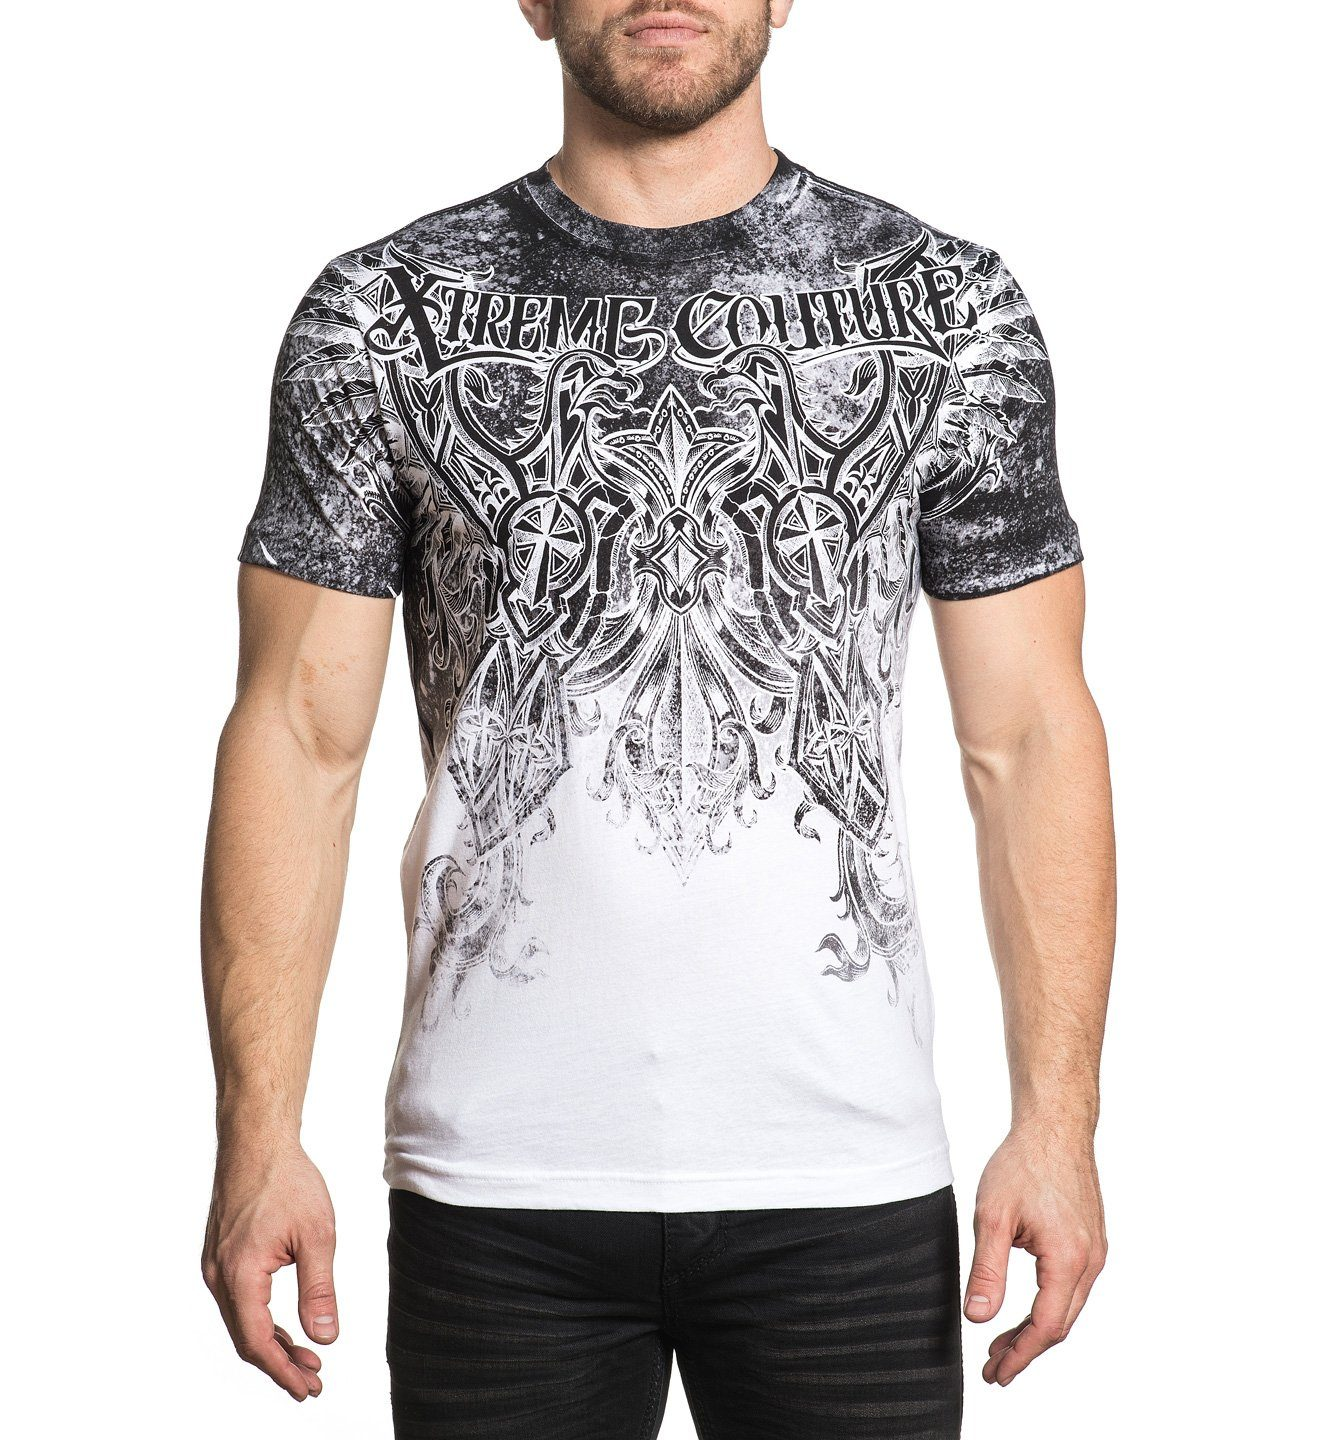 xtreme couture t shirt mit aufregendem muster - Jeans Mit Muster